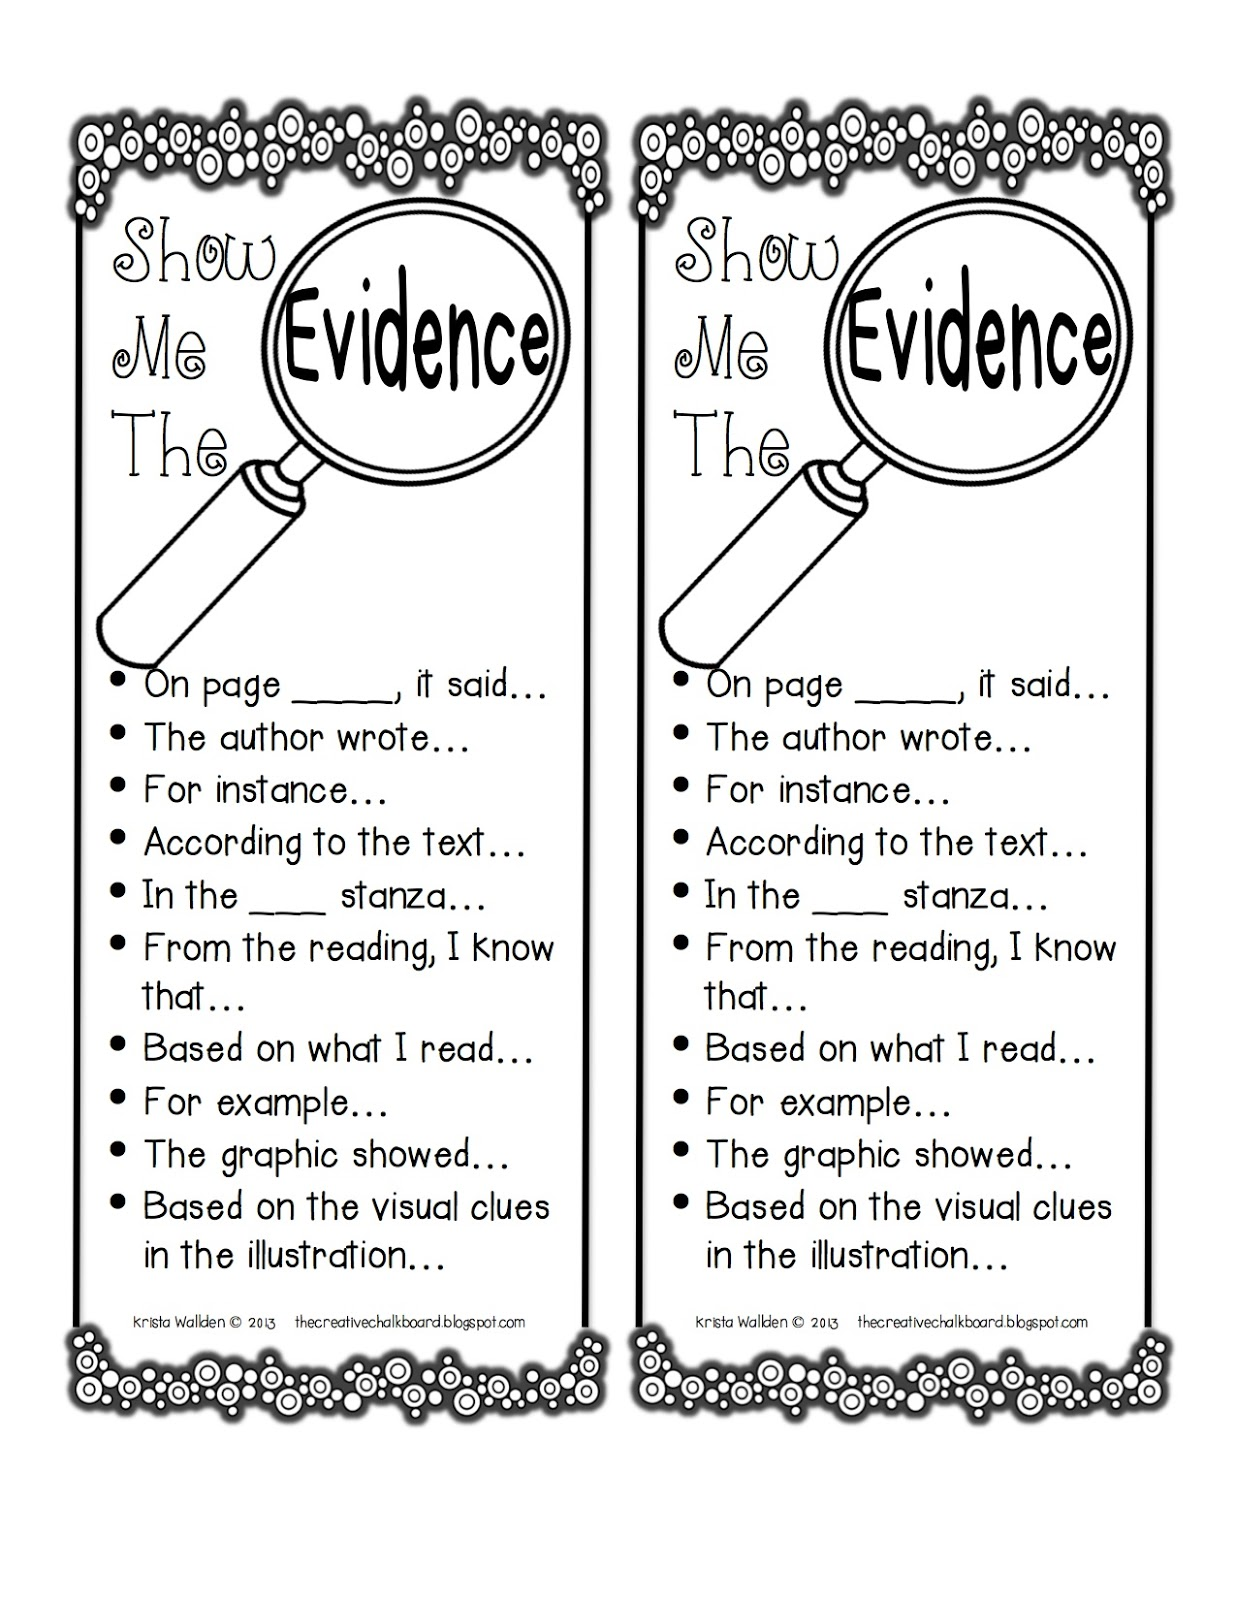 2 01 citing textual evidence Overview of the greenbook 12th edition by judy l white1 significant changes  continue to cite rules of evidence and procedure as before (r 132, 133, pp 66–68) 6  rule 422 – the text states to include a parallel cite to the texas civil appeals reports, but the example does not include a parallel citation because other.